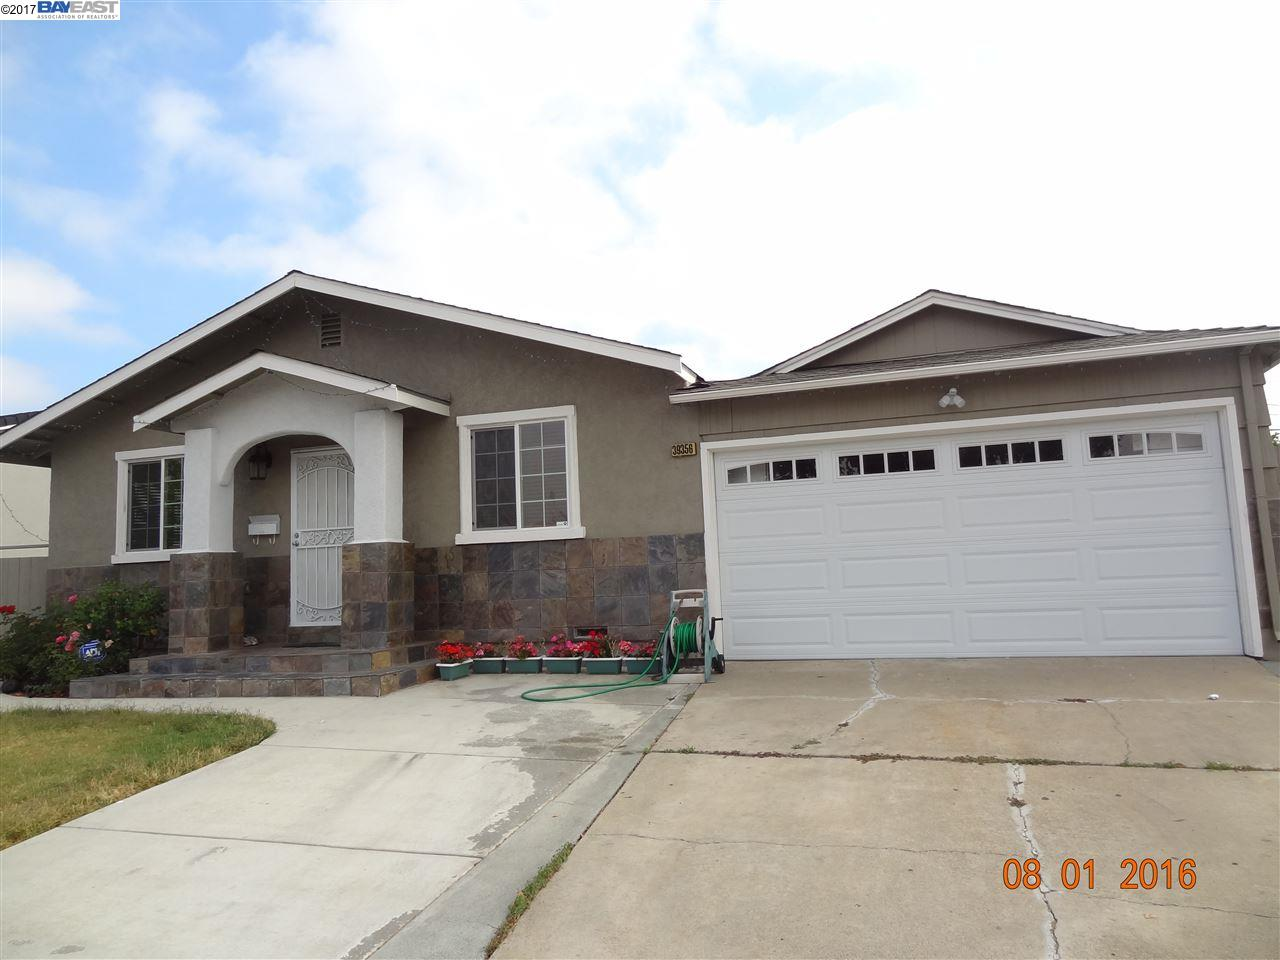 39356 BLACOW RD, FREMONT, CA 94538